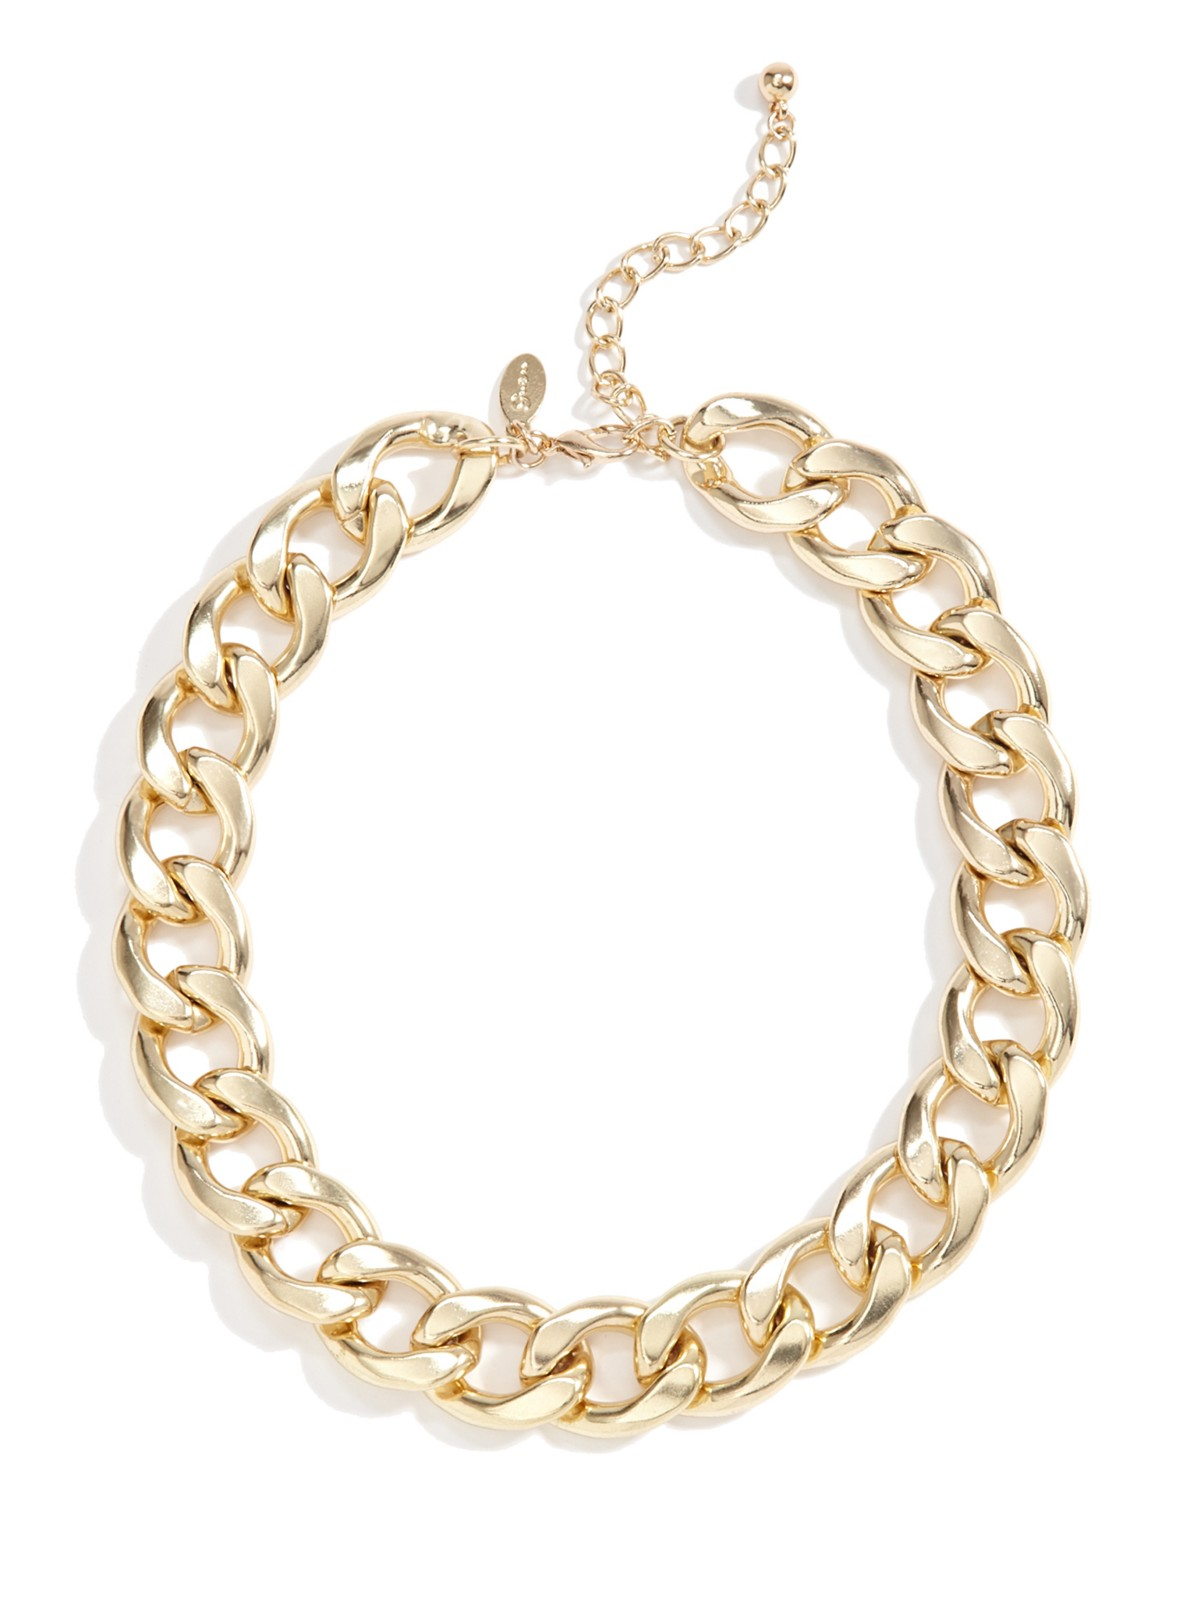 MOLOCH Sparkling Druzy Leaf Choker Necklace Fashion Gold-Tone Collar Necklace Bib Statement Chunky Tribal Necklace Woman Jewelry by MOLOCH $ - $ $ 10 99 .